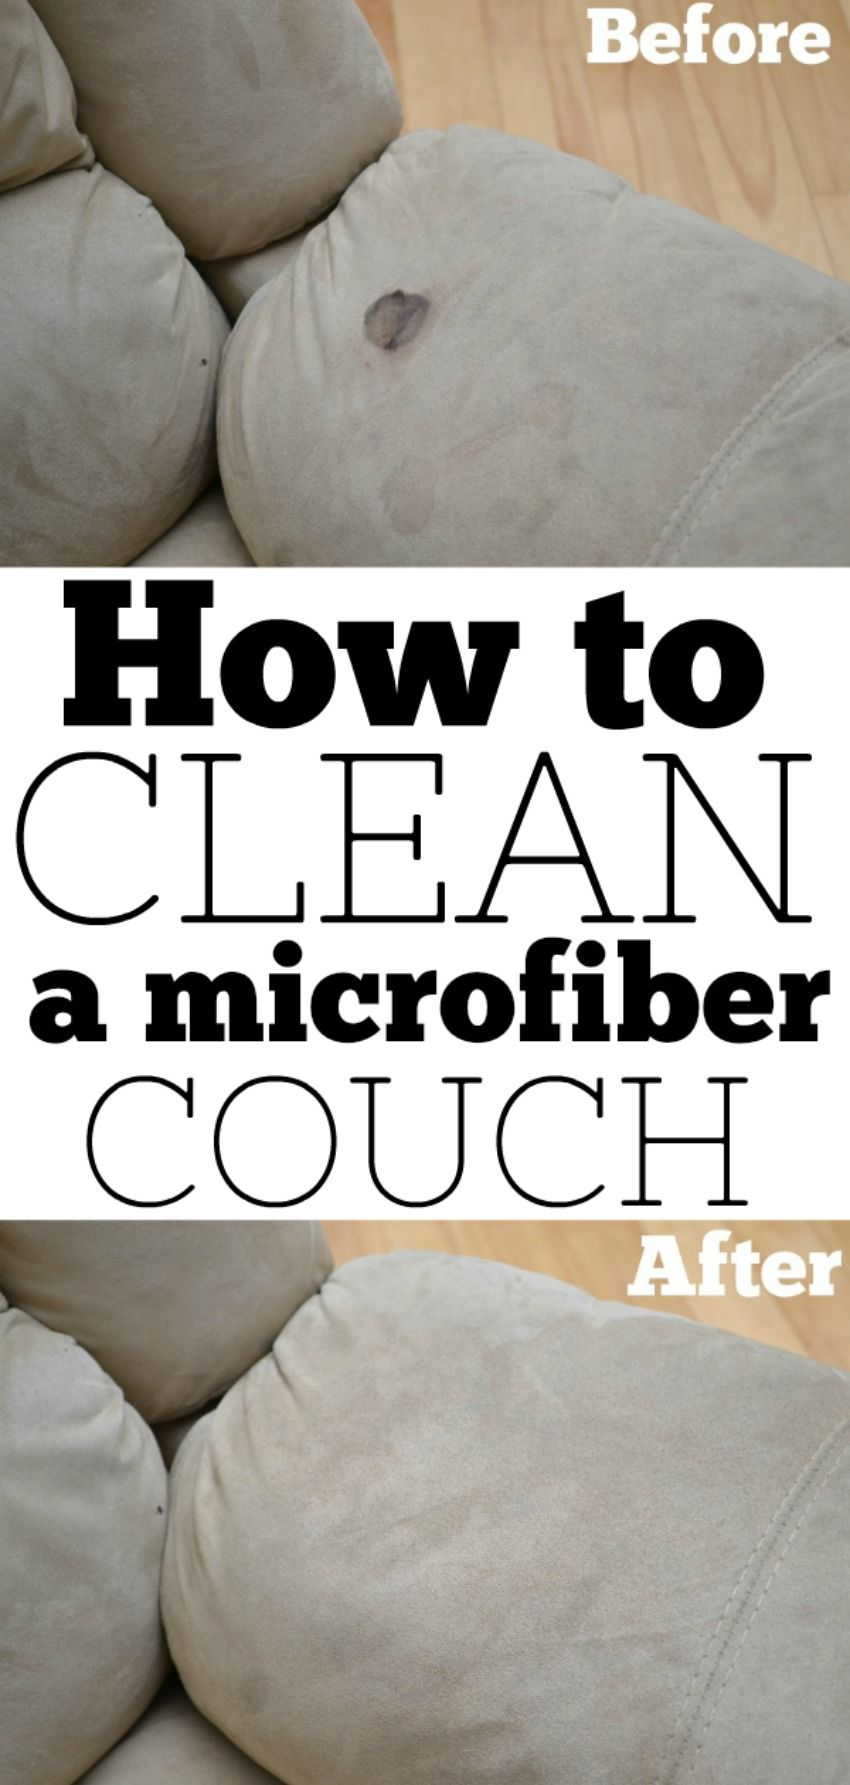 Get all the tips you need on how to clean your microfiber couch #microfiber #cleaning #couch #hacks